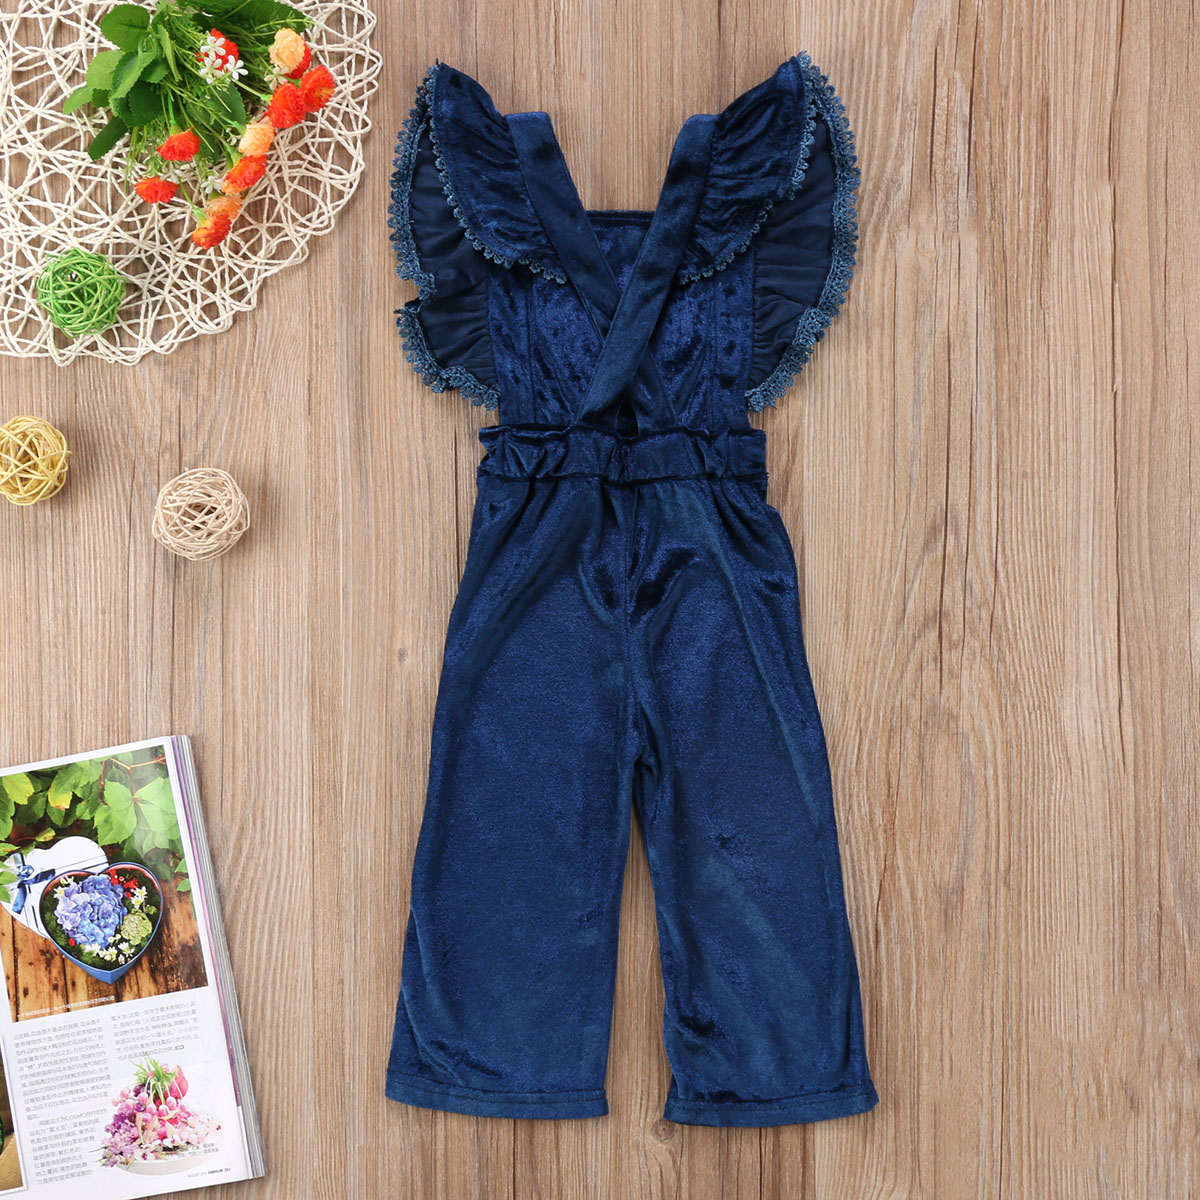 57310451ec1 PUDCOCO Newest Toddler Kids Girls Velvet Bib Pants Backless Pop Romper  Jumpsuit Outfits summer Unique Suit 0 6Y-in Clothing Sets from Mother   Kids  on ...